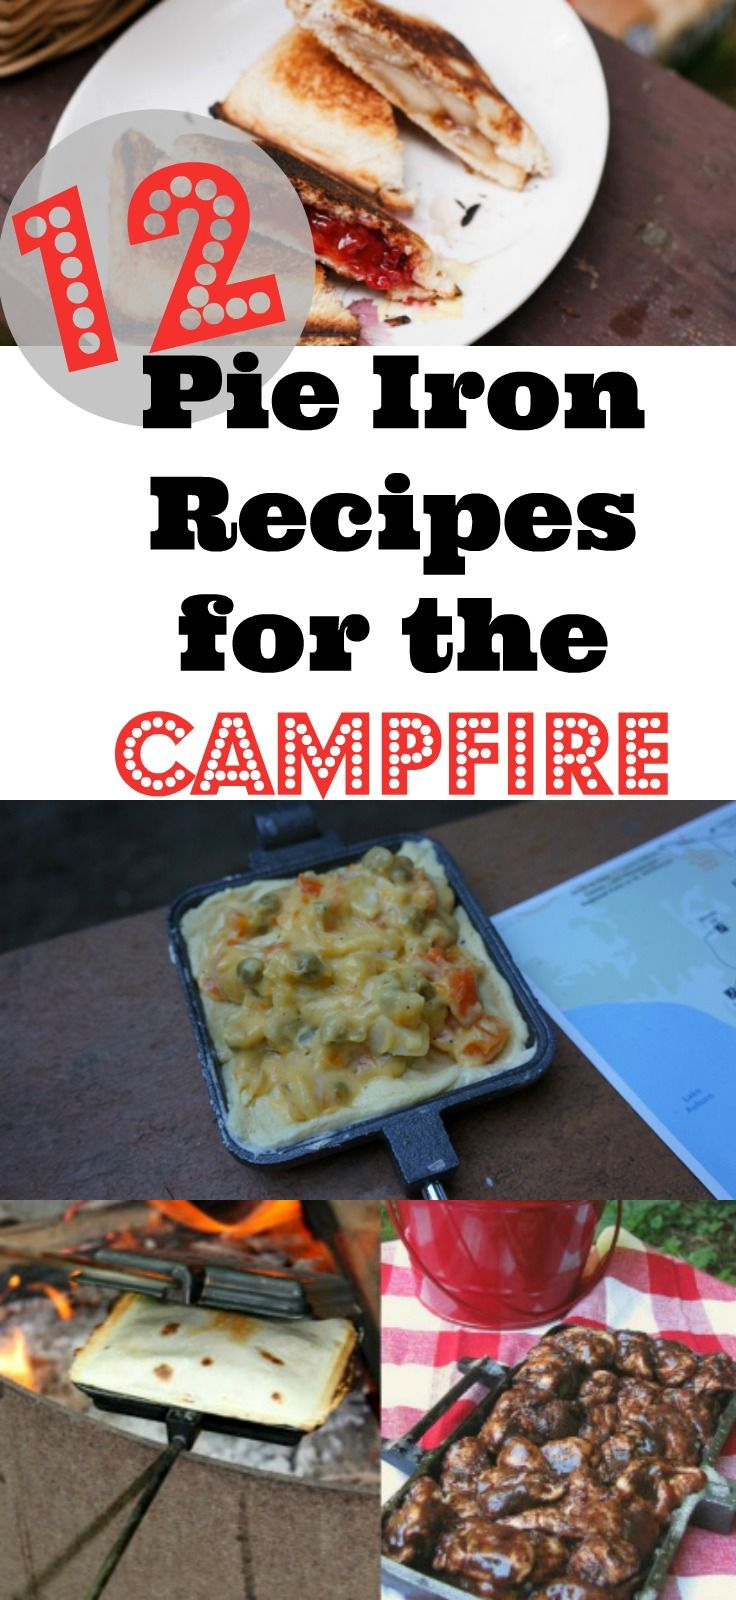 Pie Iron Recipes - 12 easy recipes you need for your next camping trip - Breakfast, Lunch/Dinner, Desserts - Find more great camping tips, camping meals, and more at http://littlefamilyadventure.com/tag/camping.